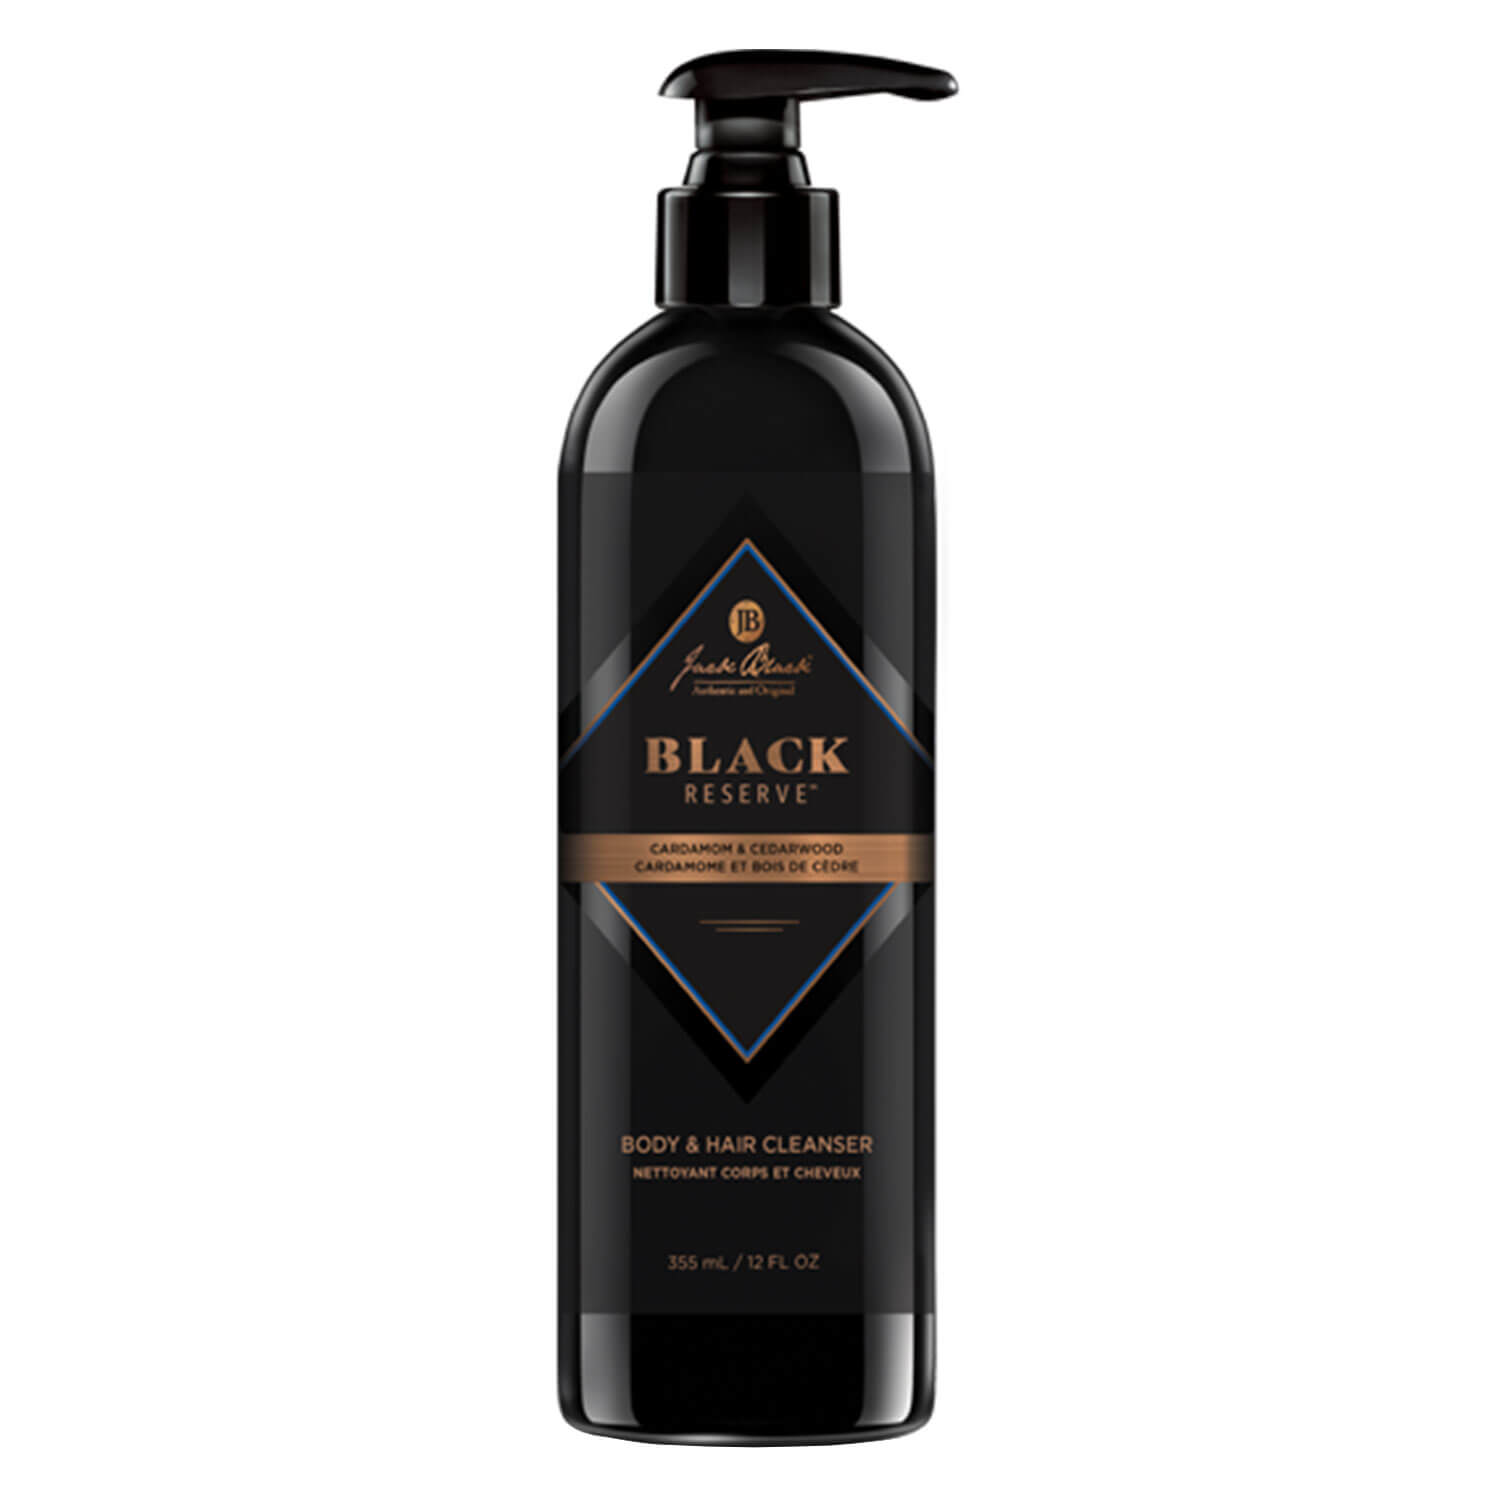 Black Reserve - Body & Hair Cleanser